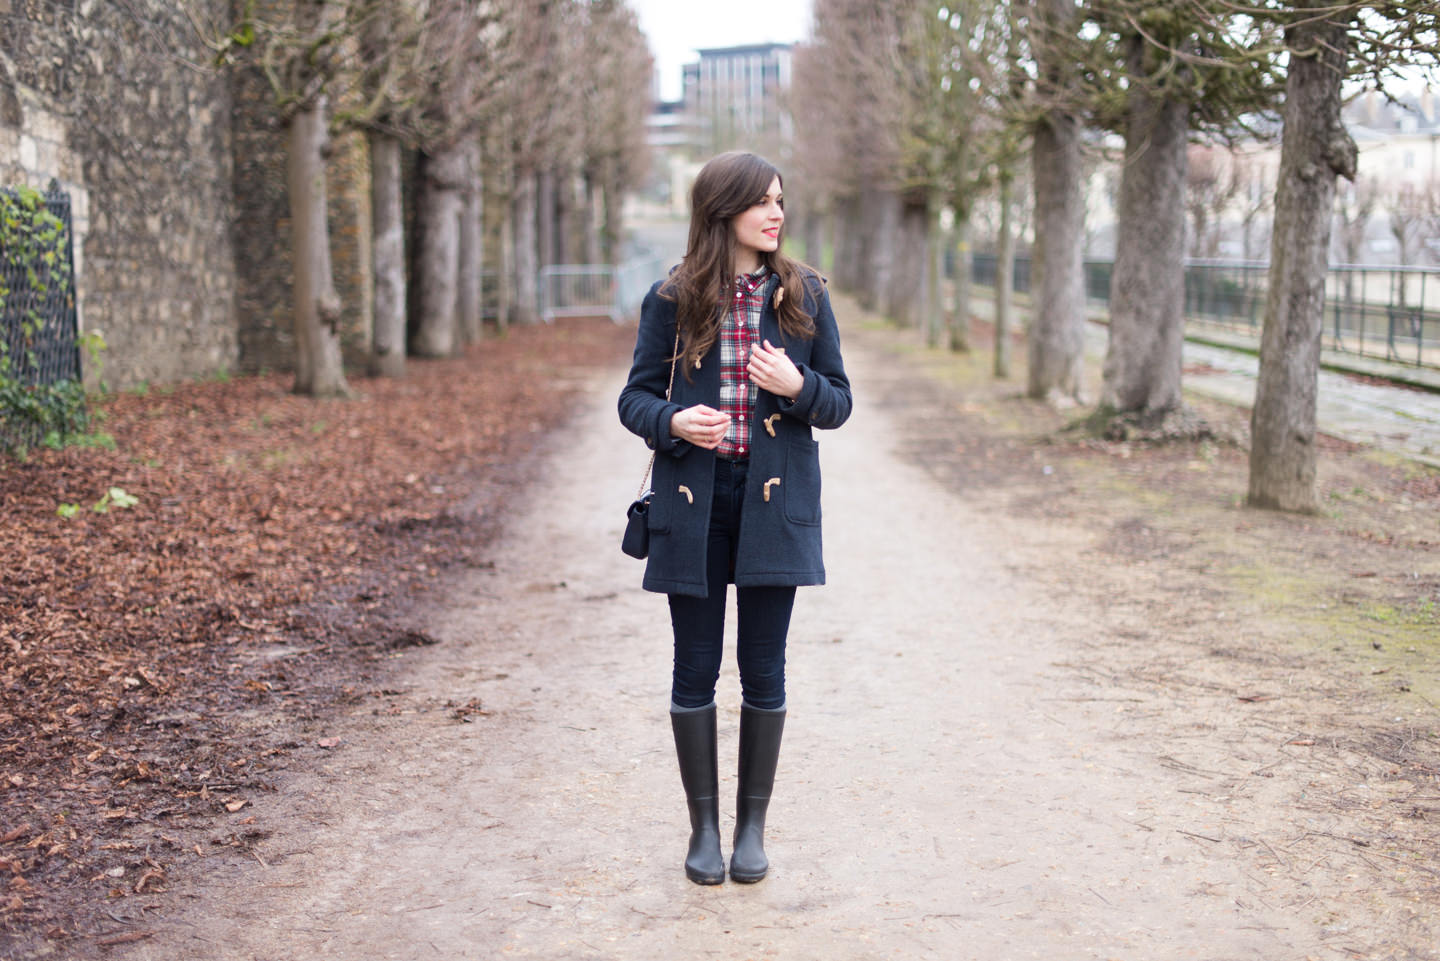 Blog-mode-and-the-city-lifestyle-5-petites-choses-164